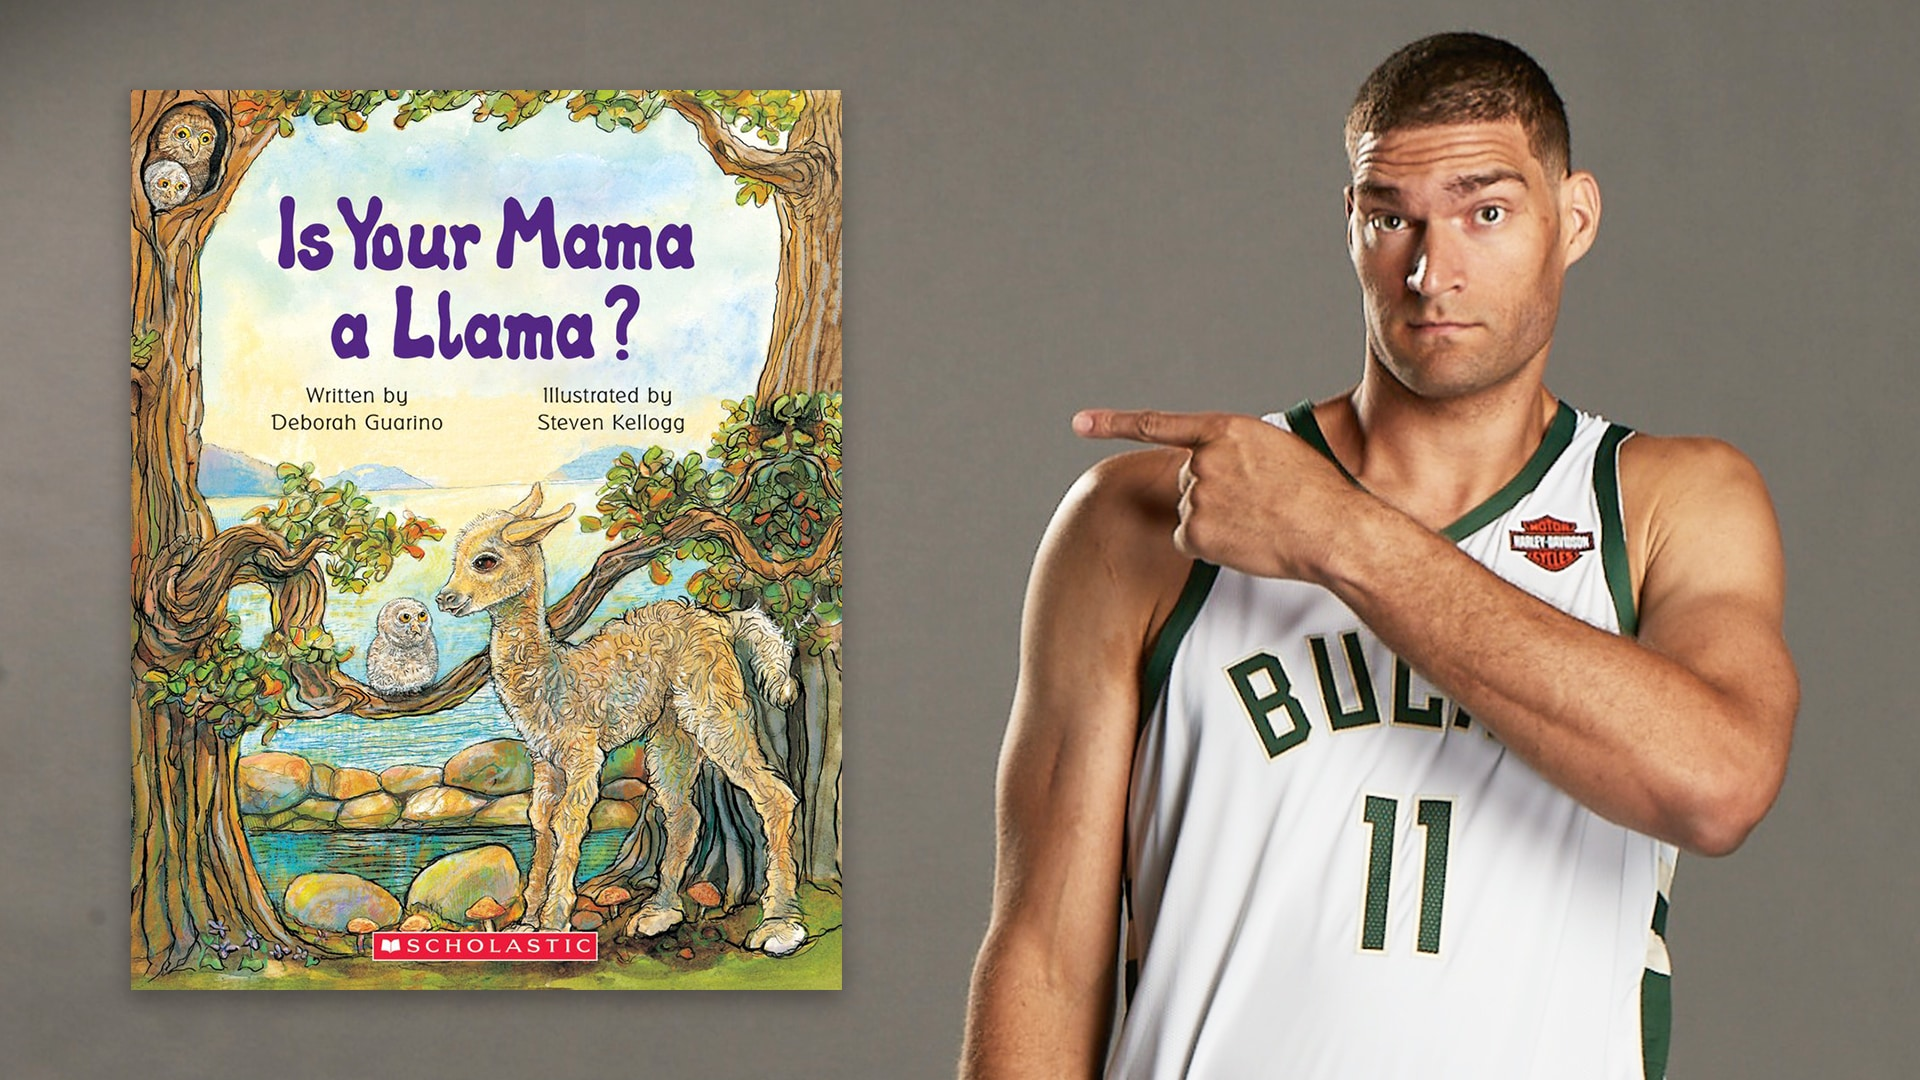 Storytime With Brook Lopez: Is Your Mama a Llama